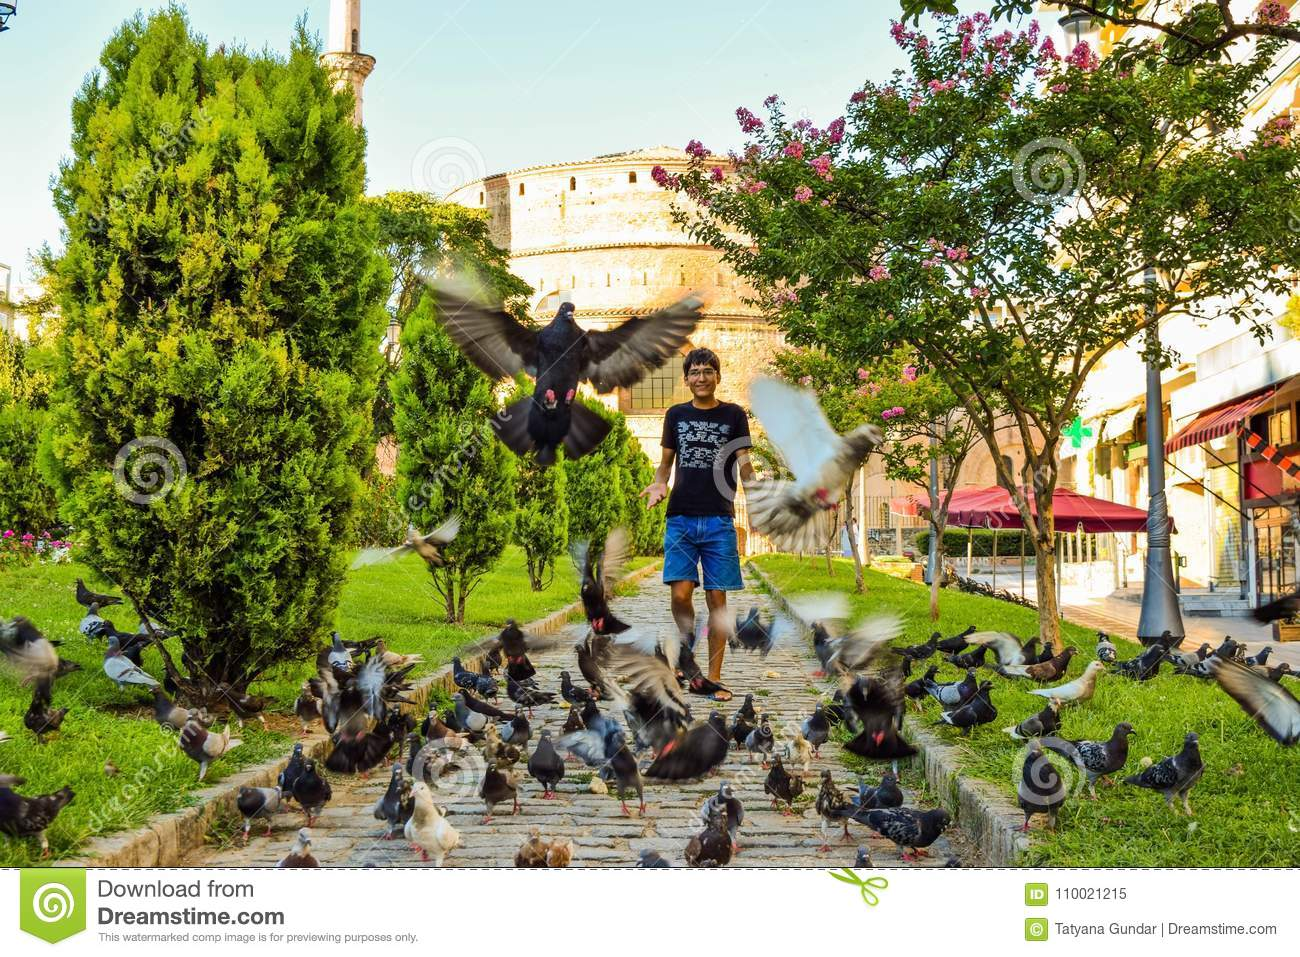 The boy and the pigeons.